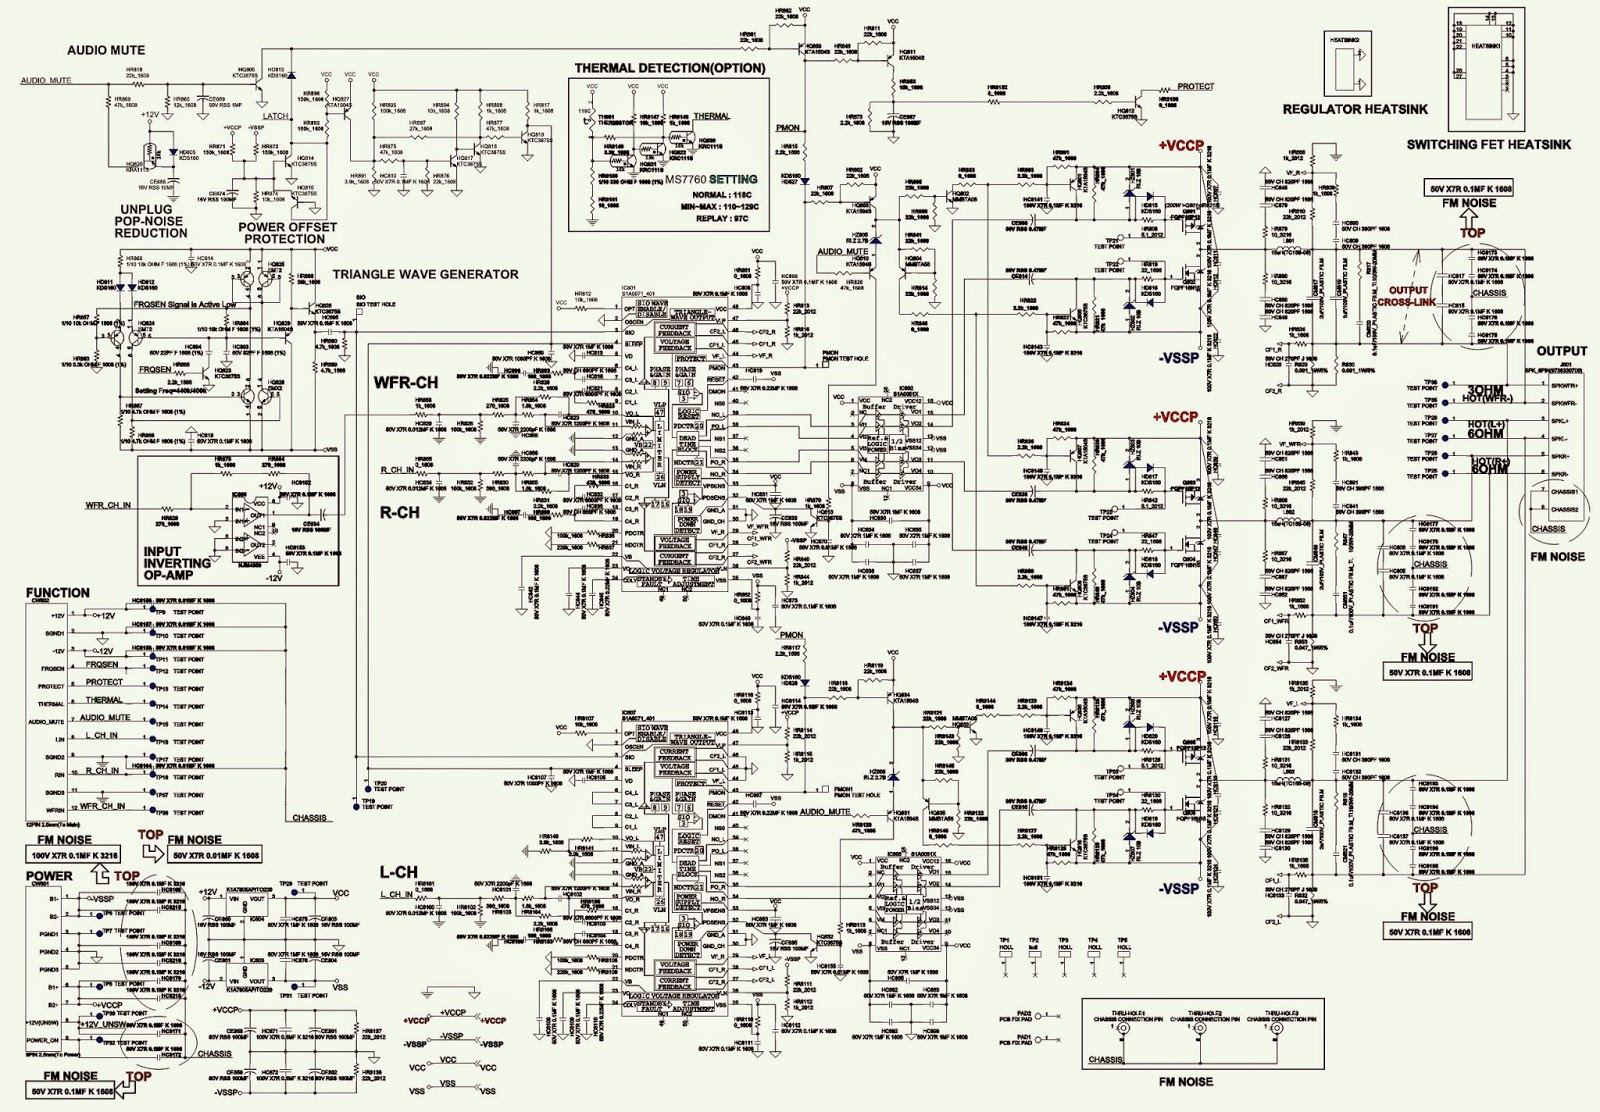 mitsubishi mirage stereo wiring diagram mobile app architecture 2000